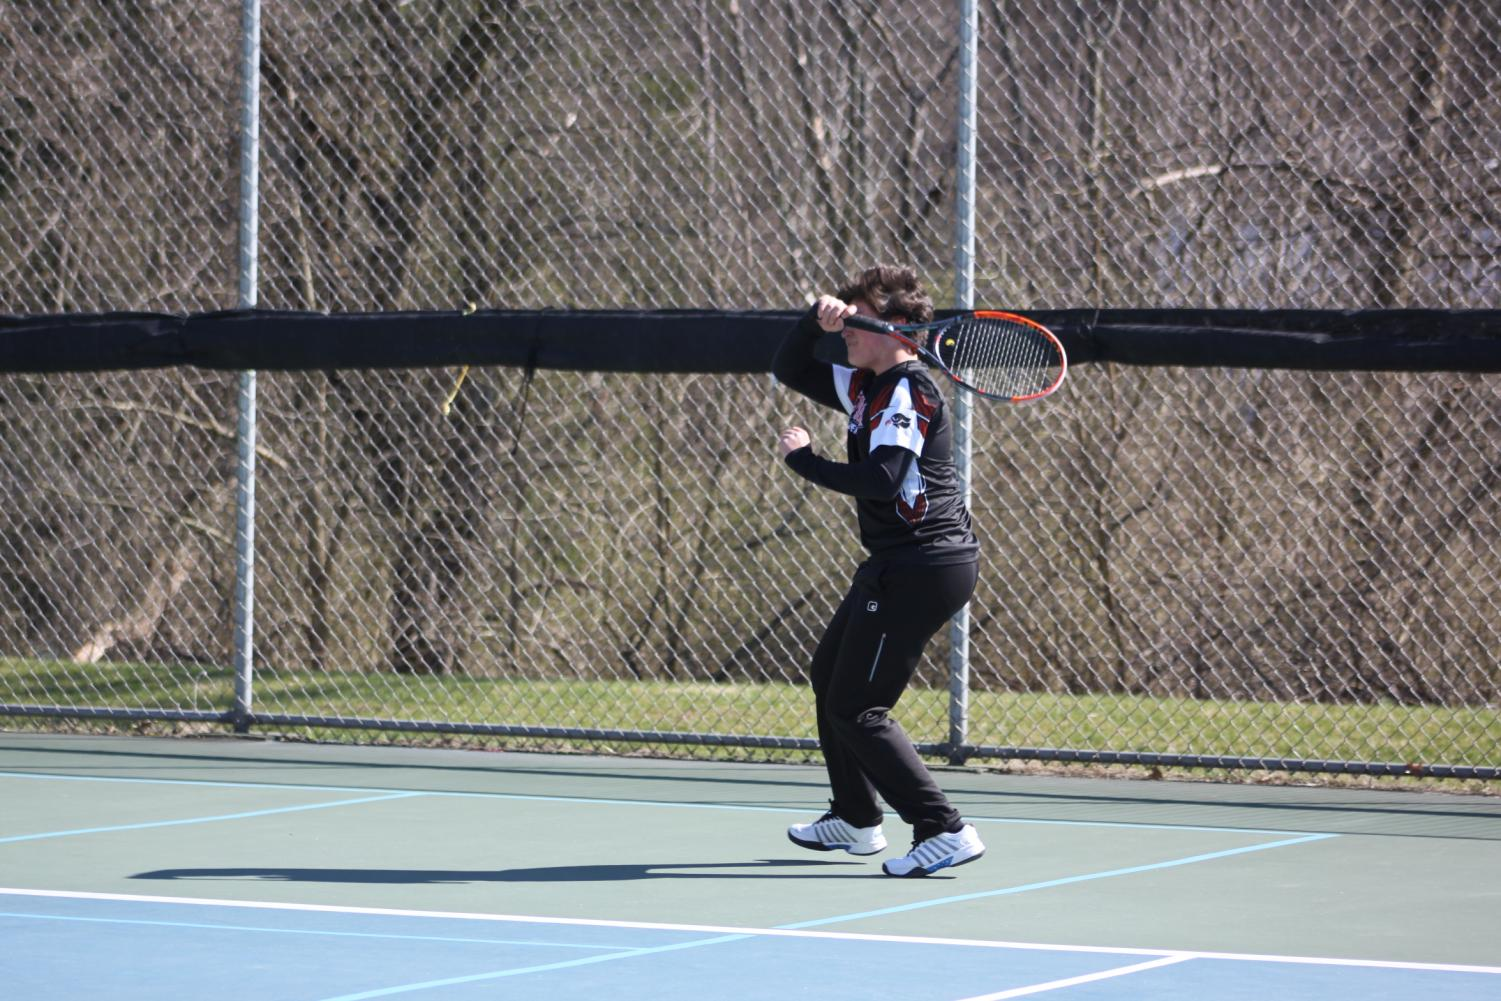 Victor+hitting+a+forehand+